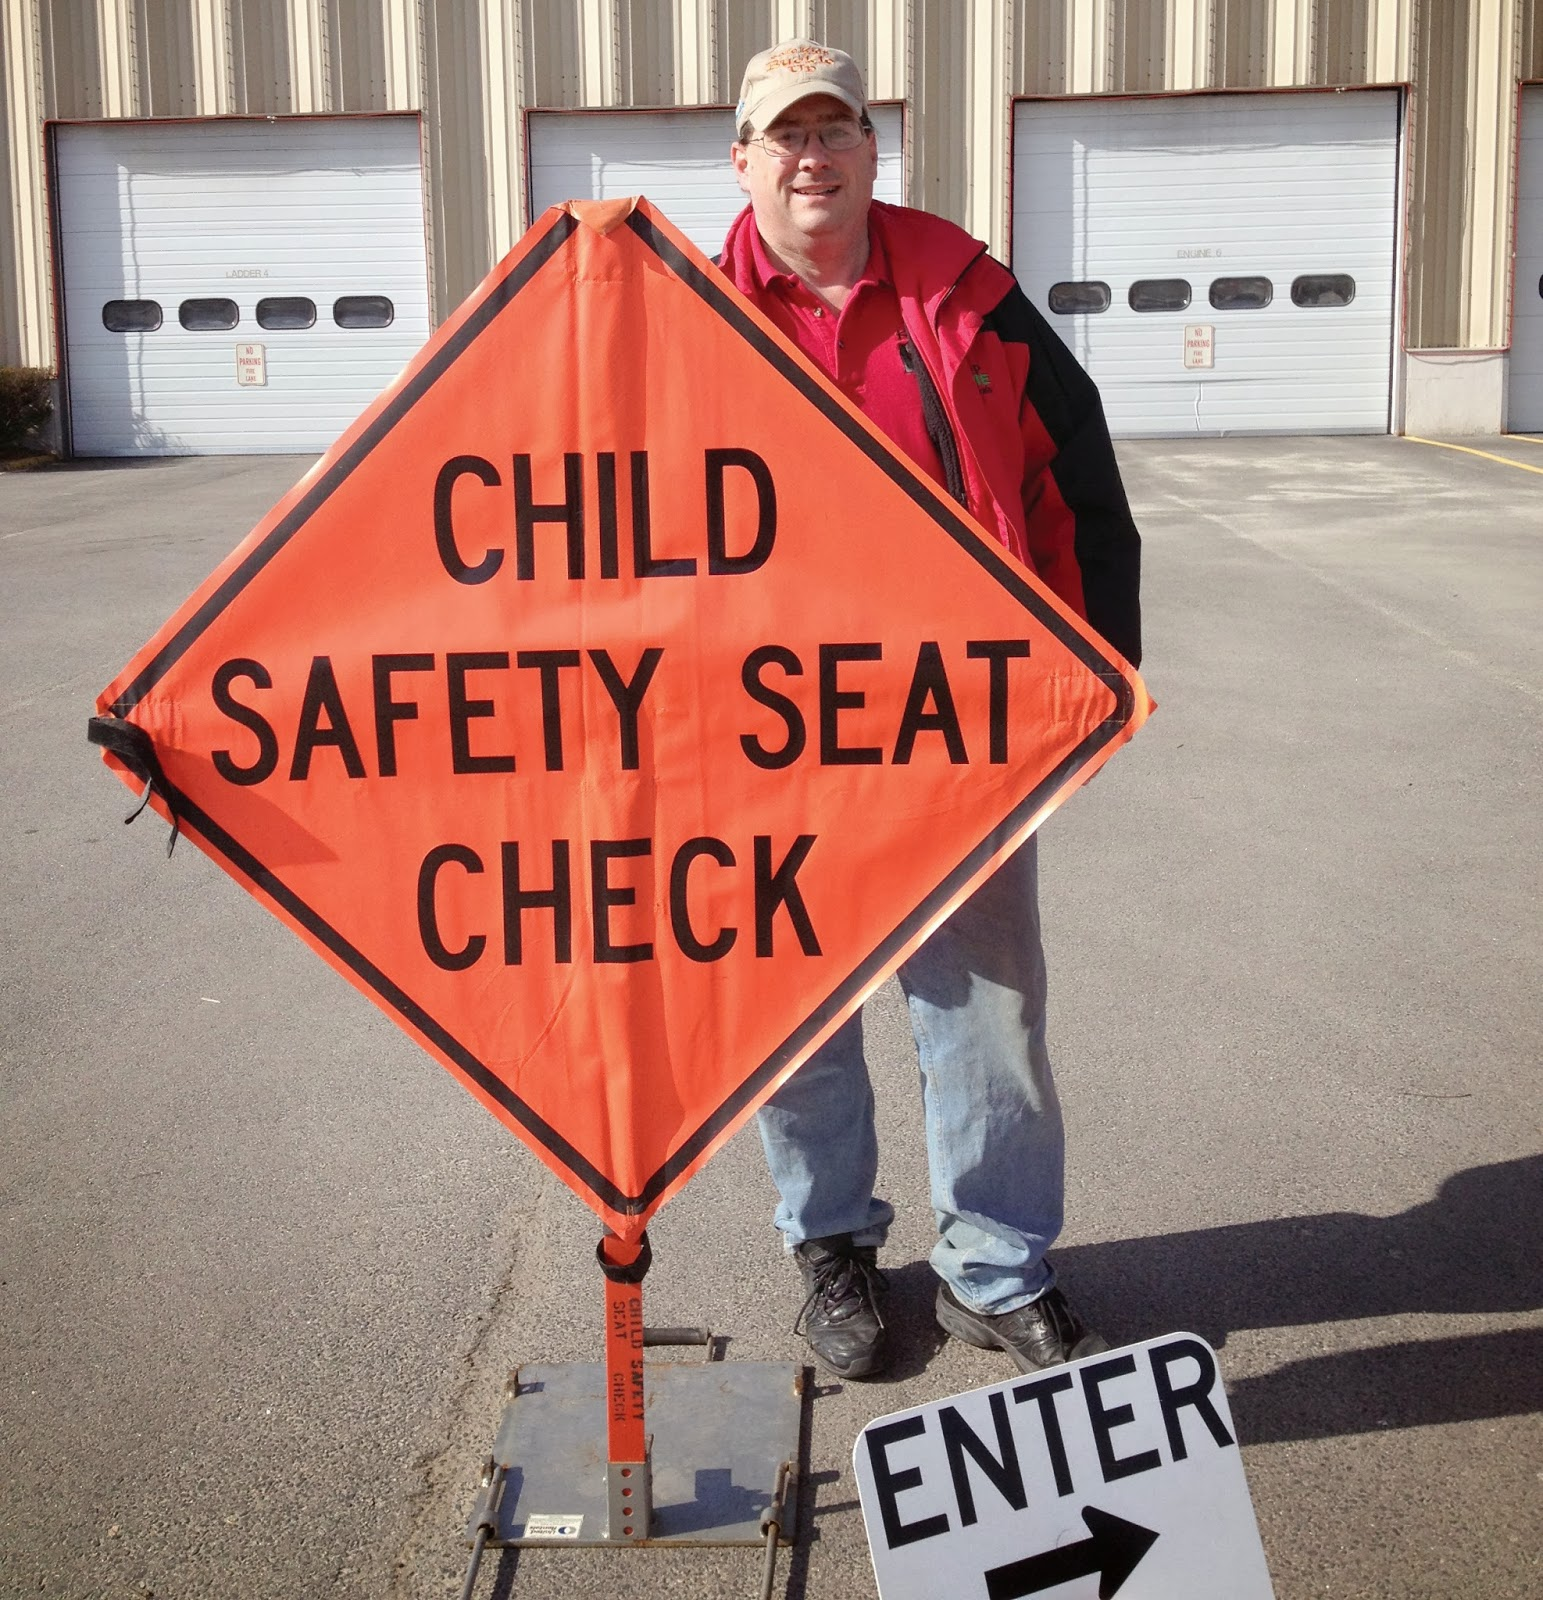 Safe Kids Maine Offers Free Car Seat Inspections And Education In Eleven Locations On A Regular Basis As Well Offering Other Quarterly Annual Events